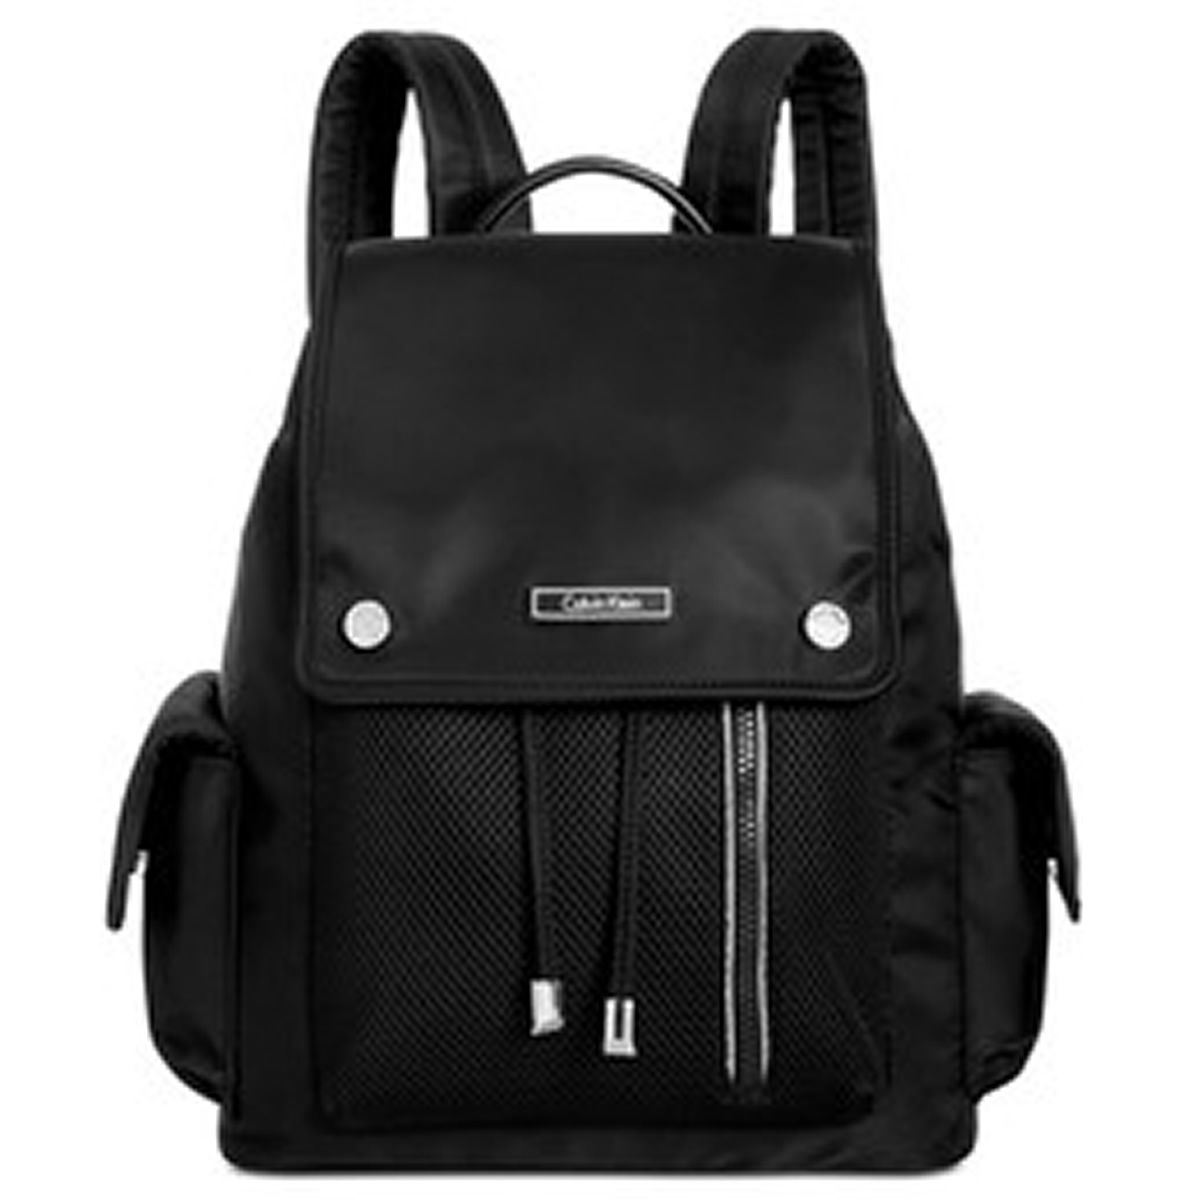 1b226d58188 Calvin Klein Backpacks - Macy's